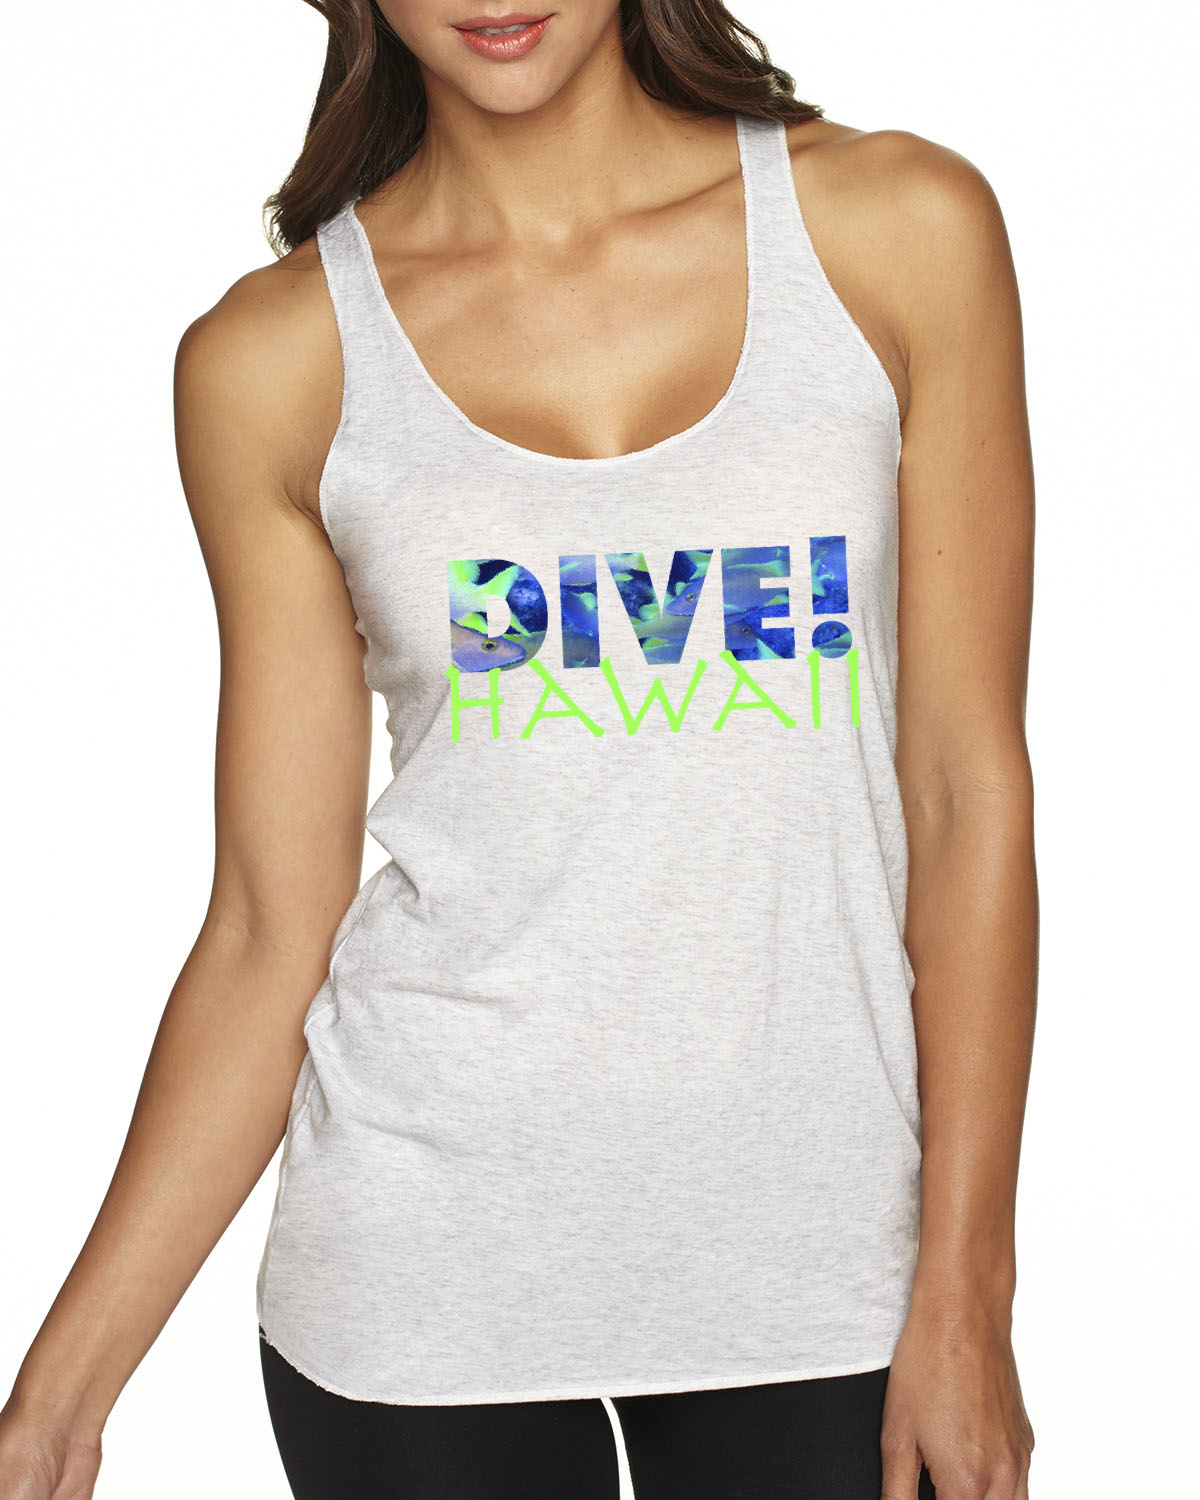 Racer-Back DIVE Hawaii Tank Top (Heather White)